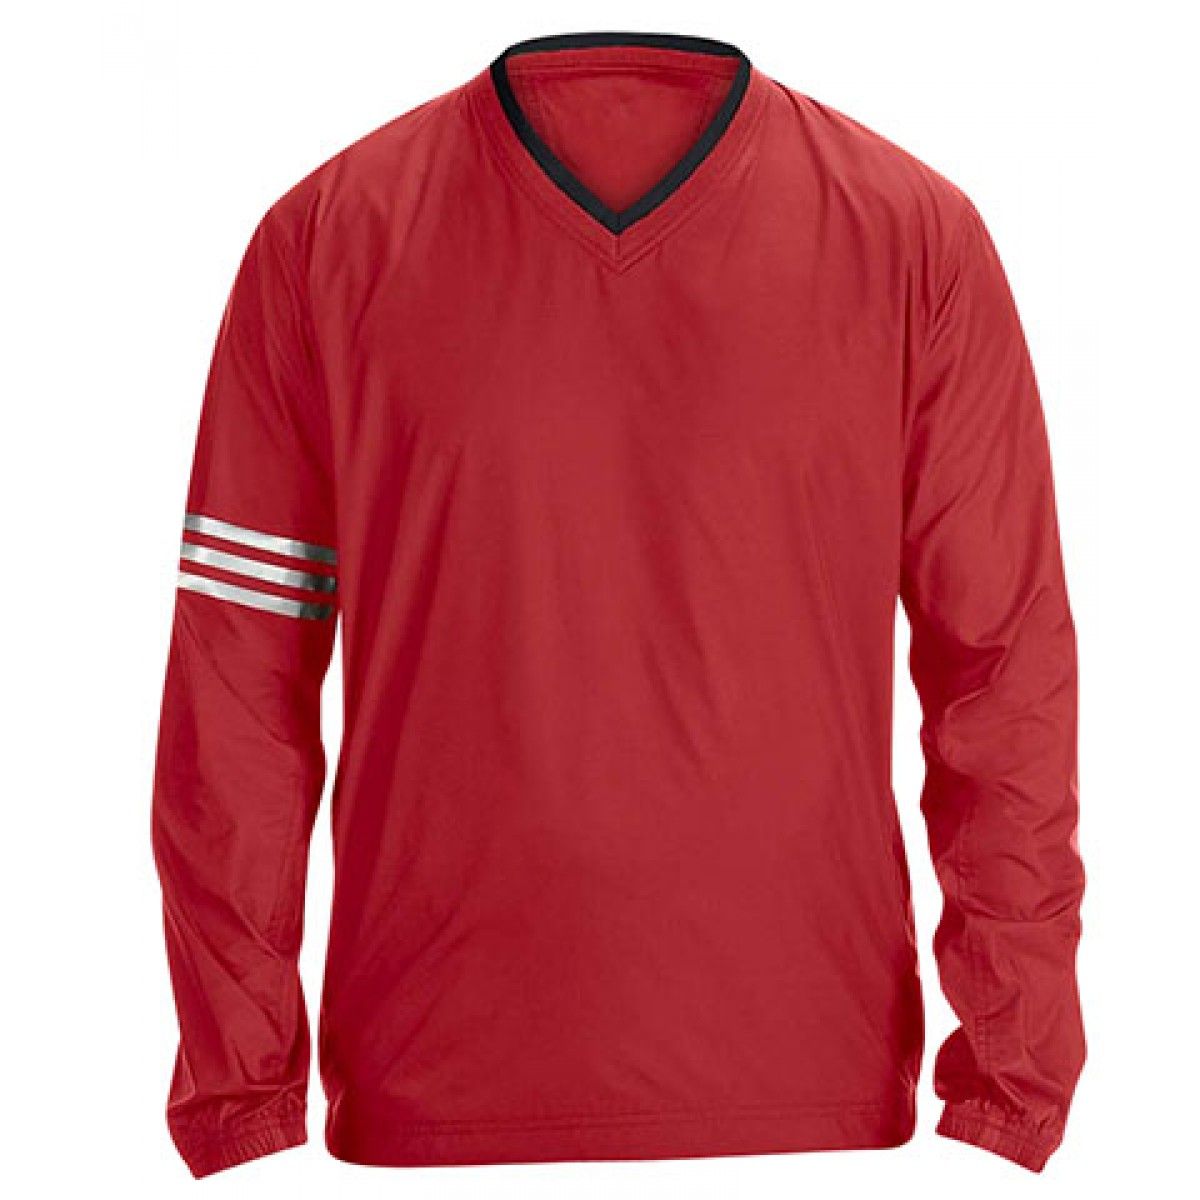 Adidas ClimaLite V-Neck Long Sleeve Wind Shirt-Red-S